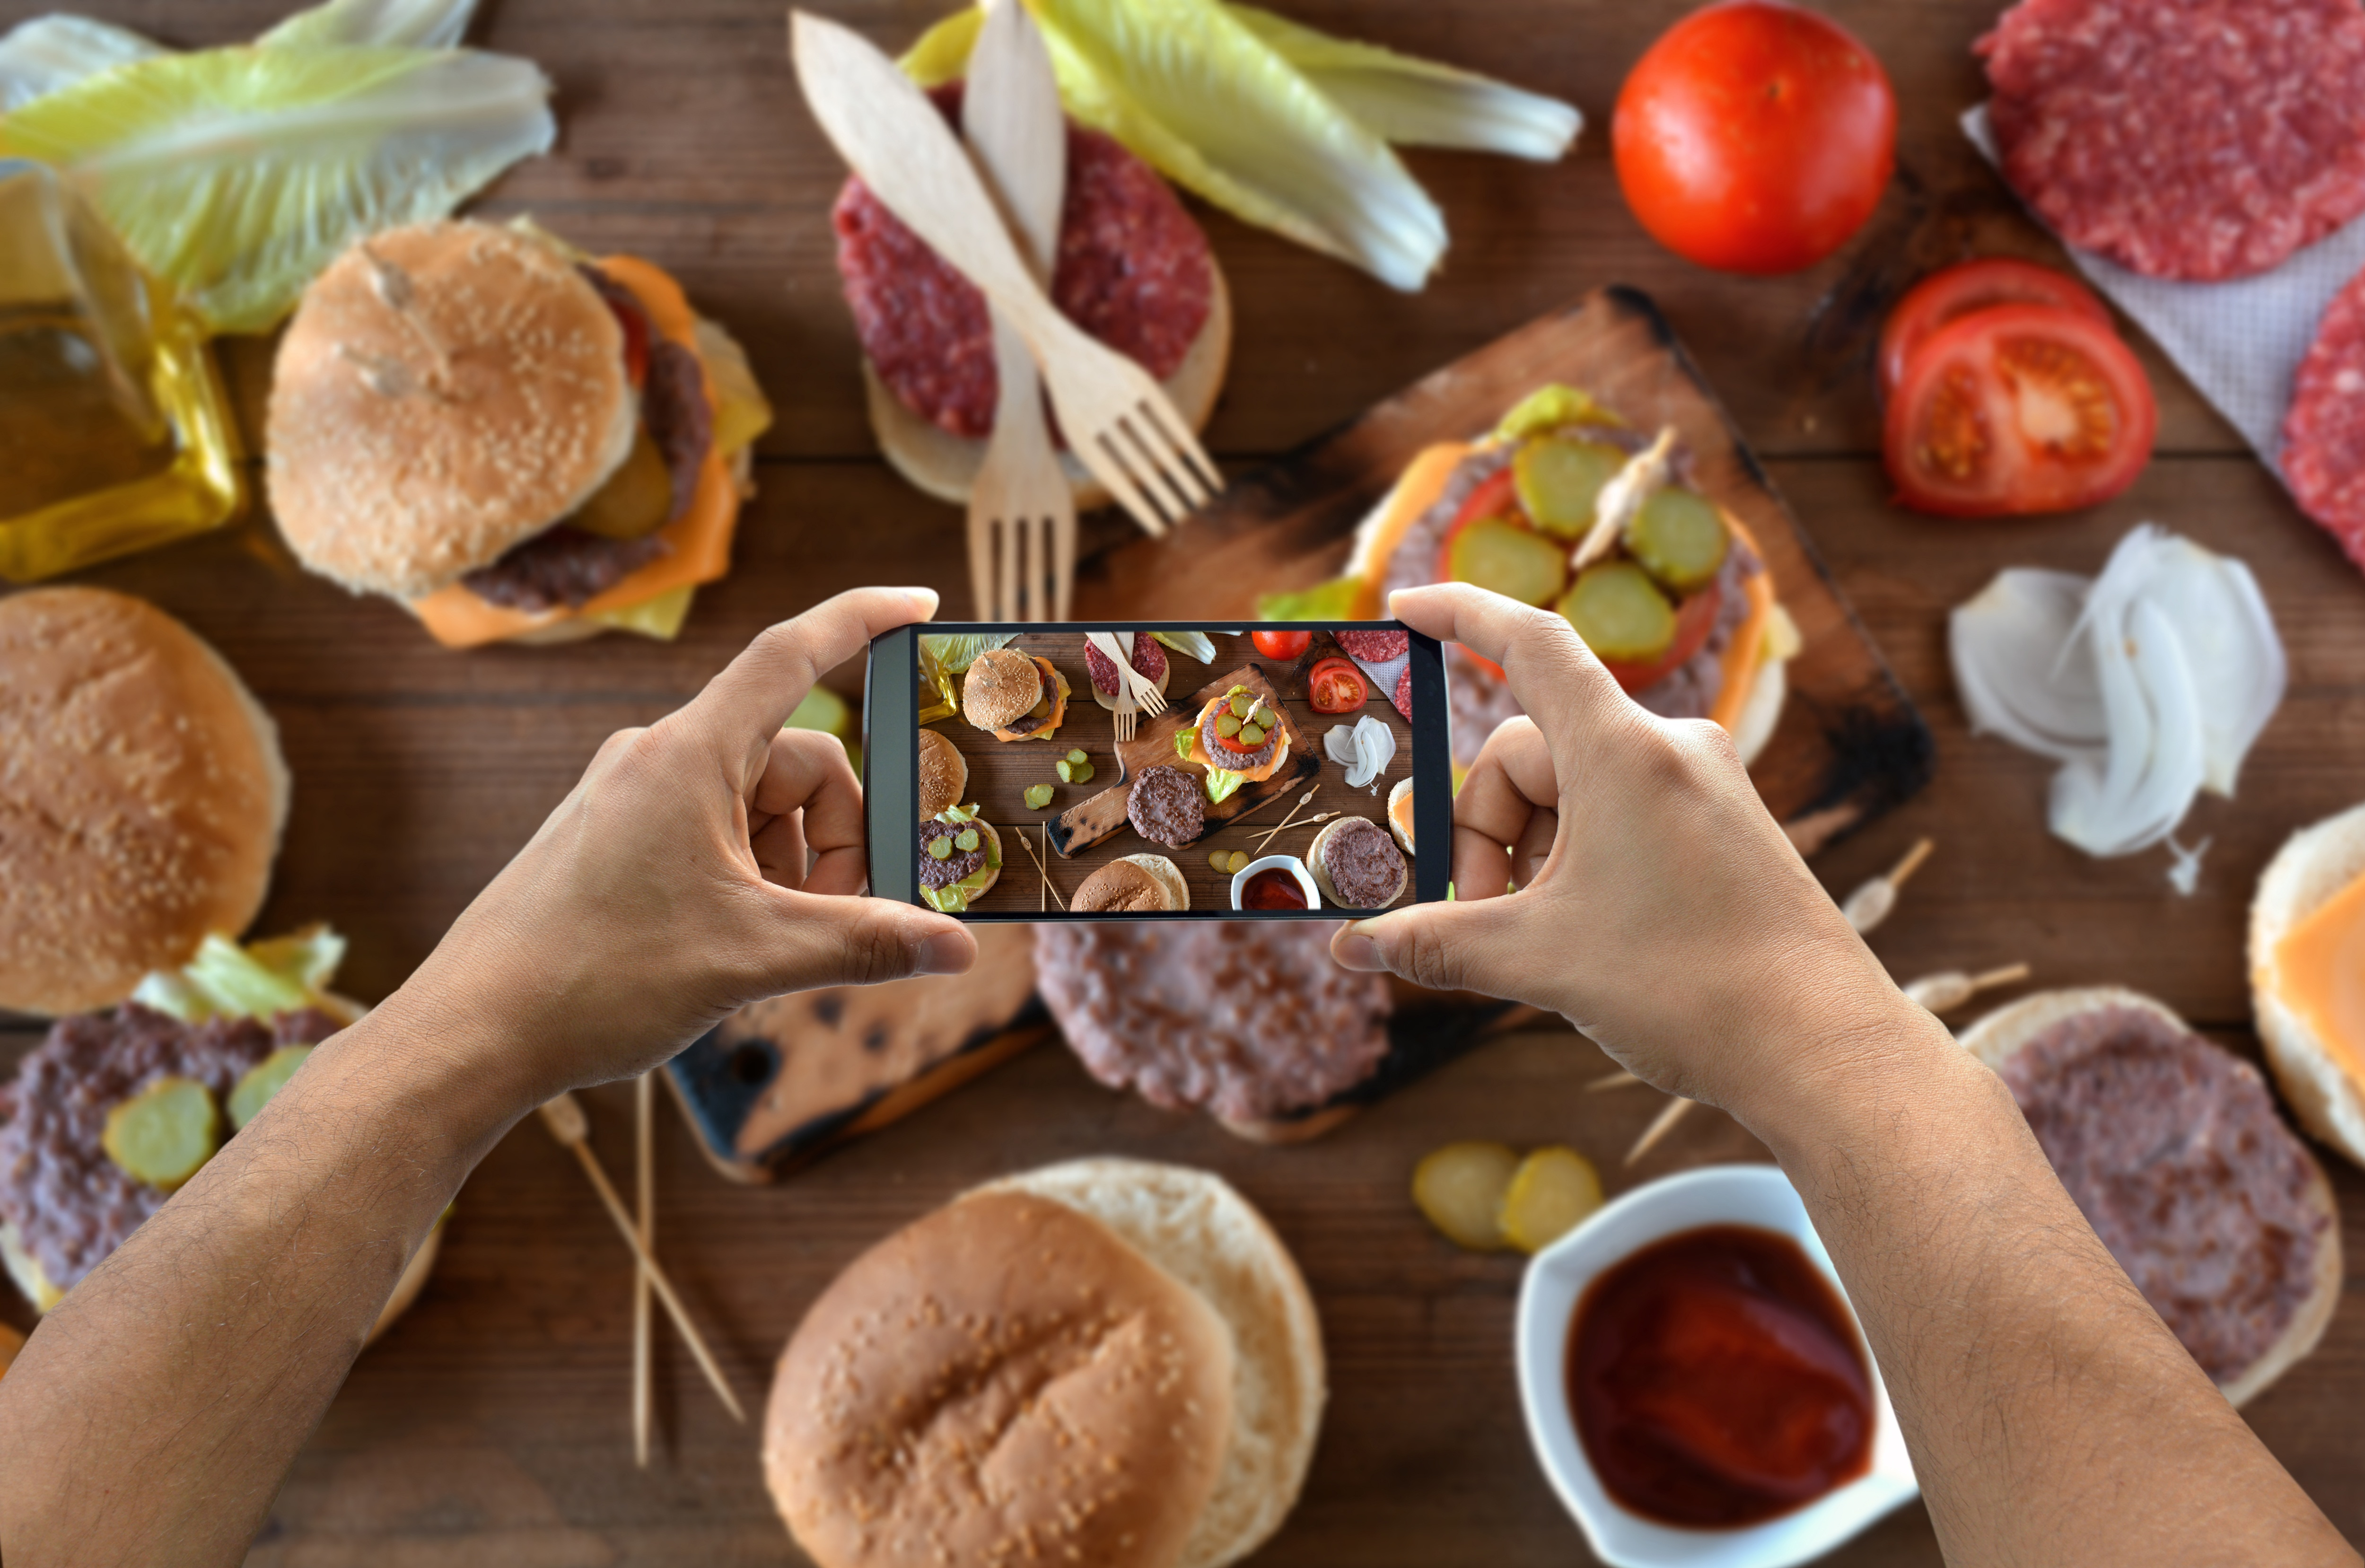 Instagram Publishing - A cellphone camera taking a picture of a burger table